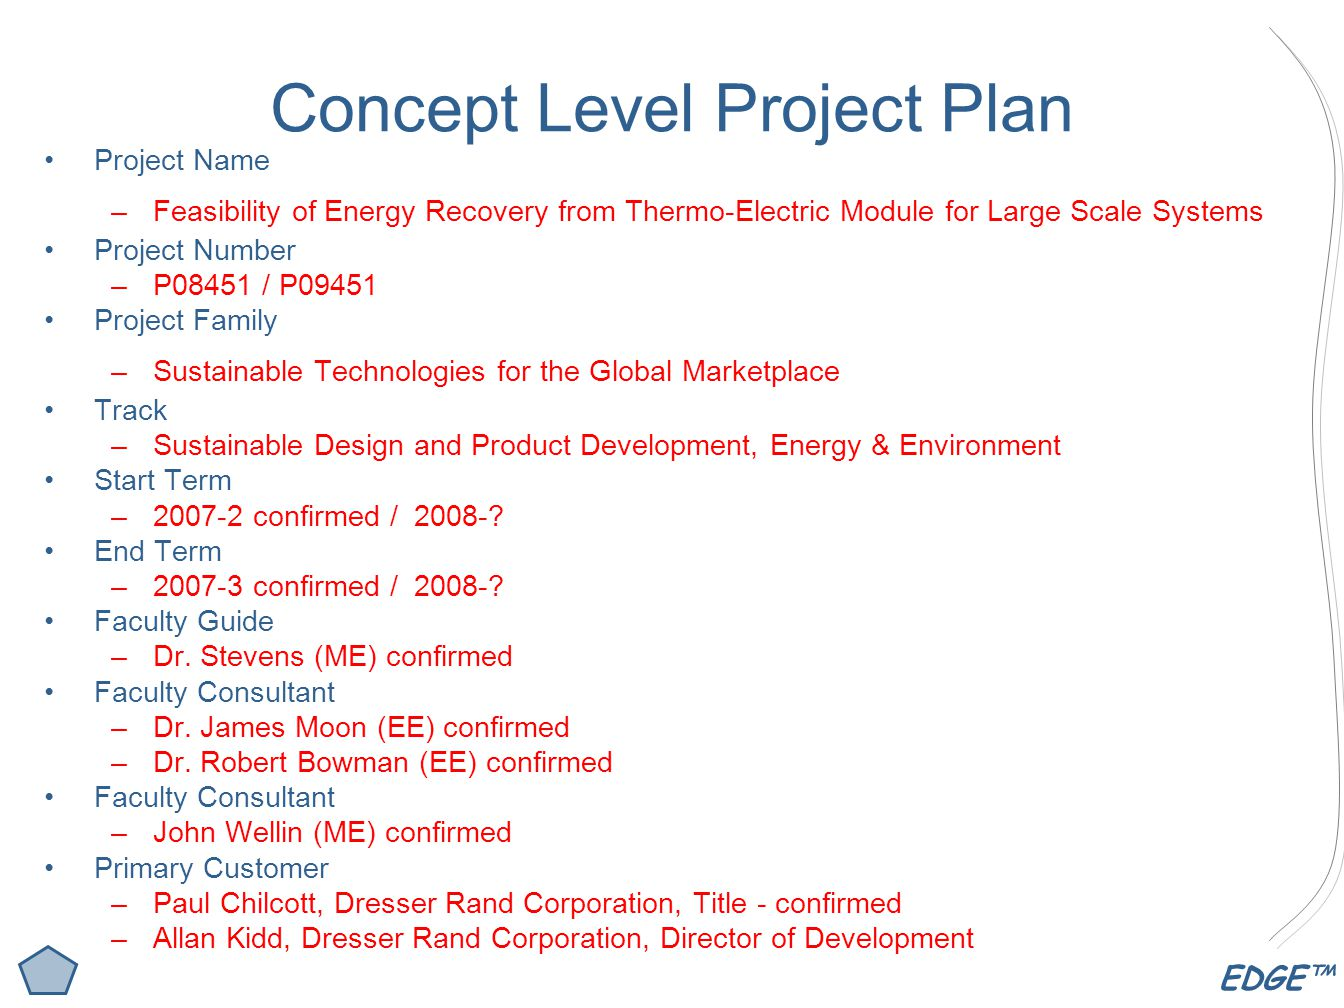 EDGE™ Concept Level Project Plan Project Name –Feasibility of Energy Recovery from Thermo-Electric Module for Large Scale Systems Project Number –P08451 / P09451 Project Family –Sustainable Technologies for the Global Marketplace Track –Sustainable Design and Product Development, Energy & Environment Start Term – confirmed /